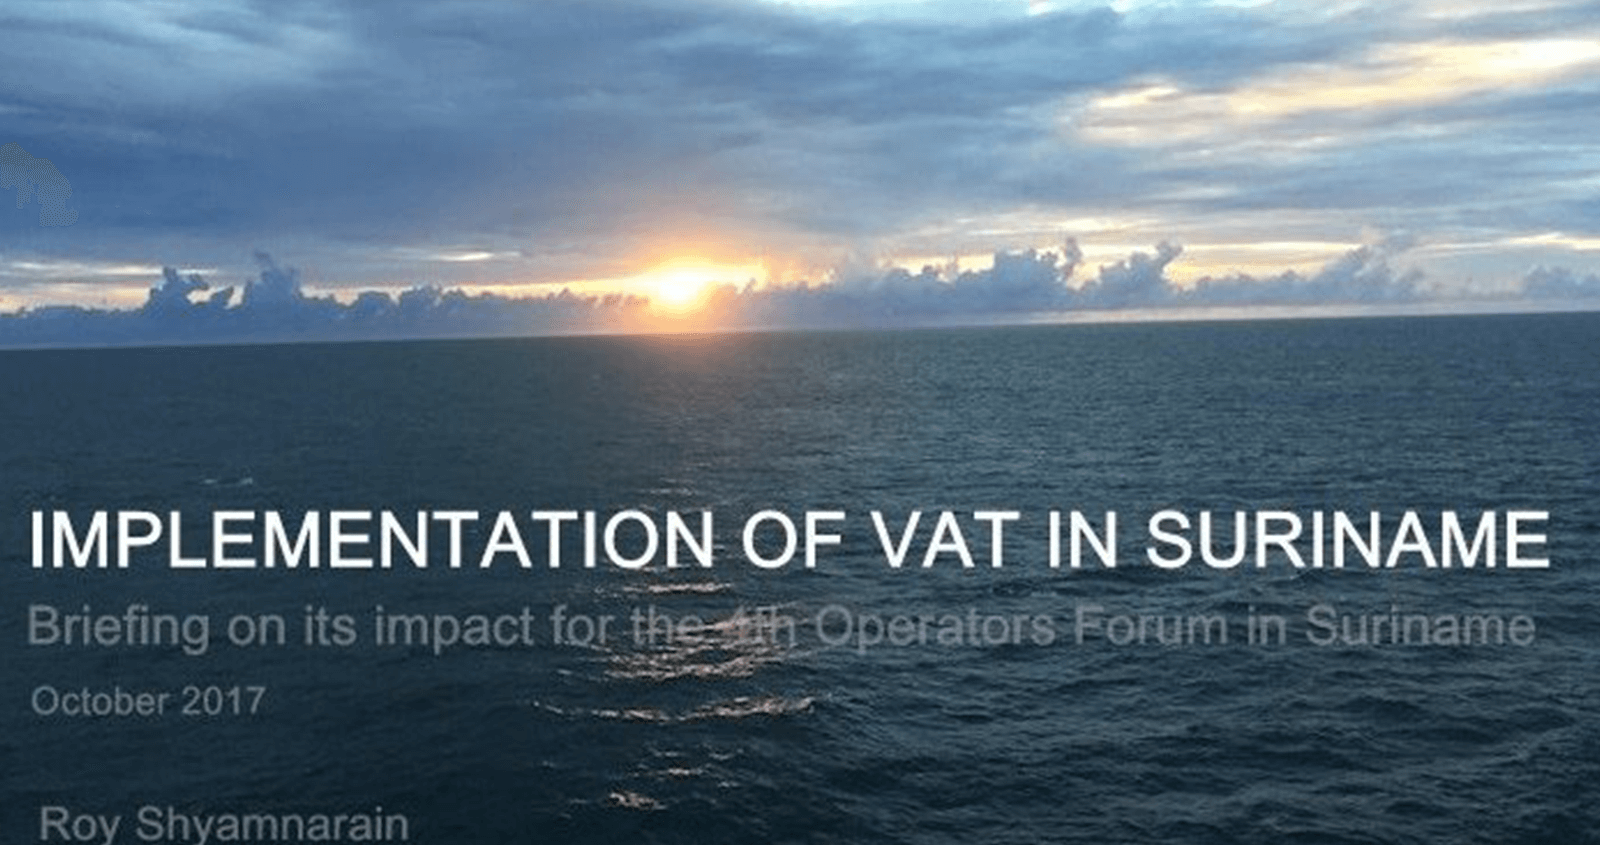 Impact of the implementation of VAT on the oil and gas sector in Suriname